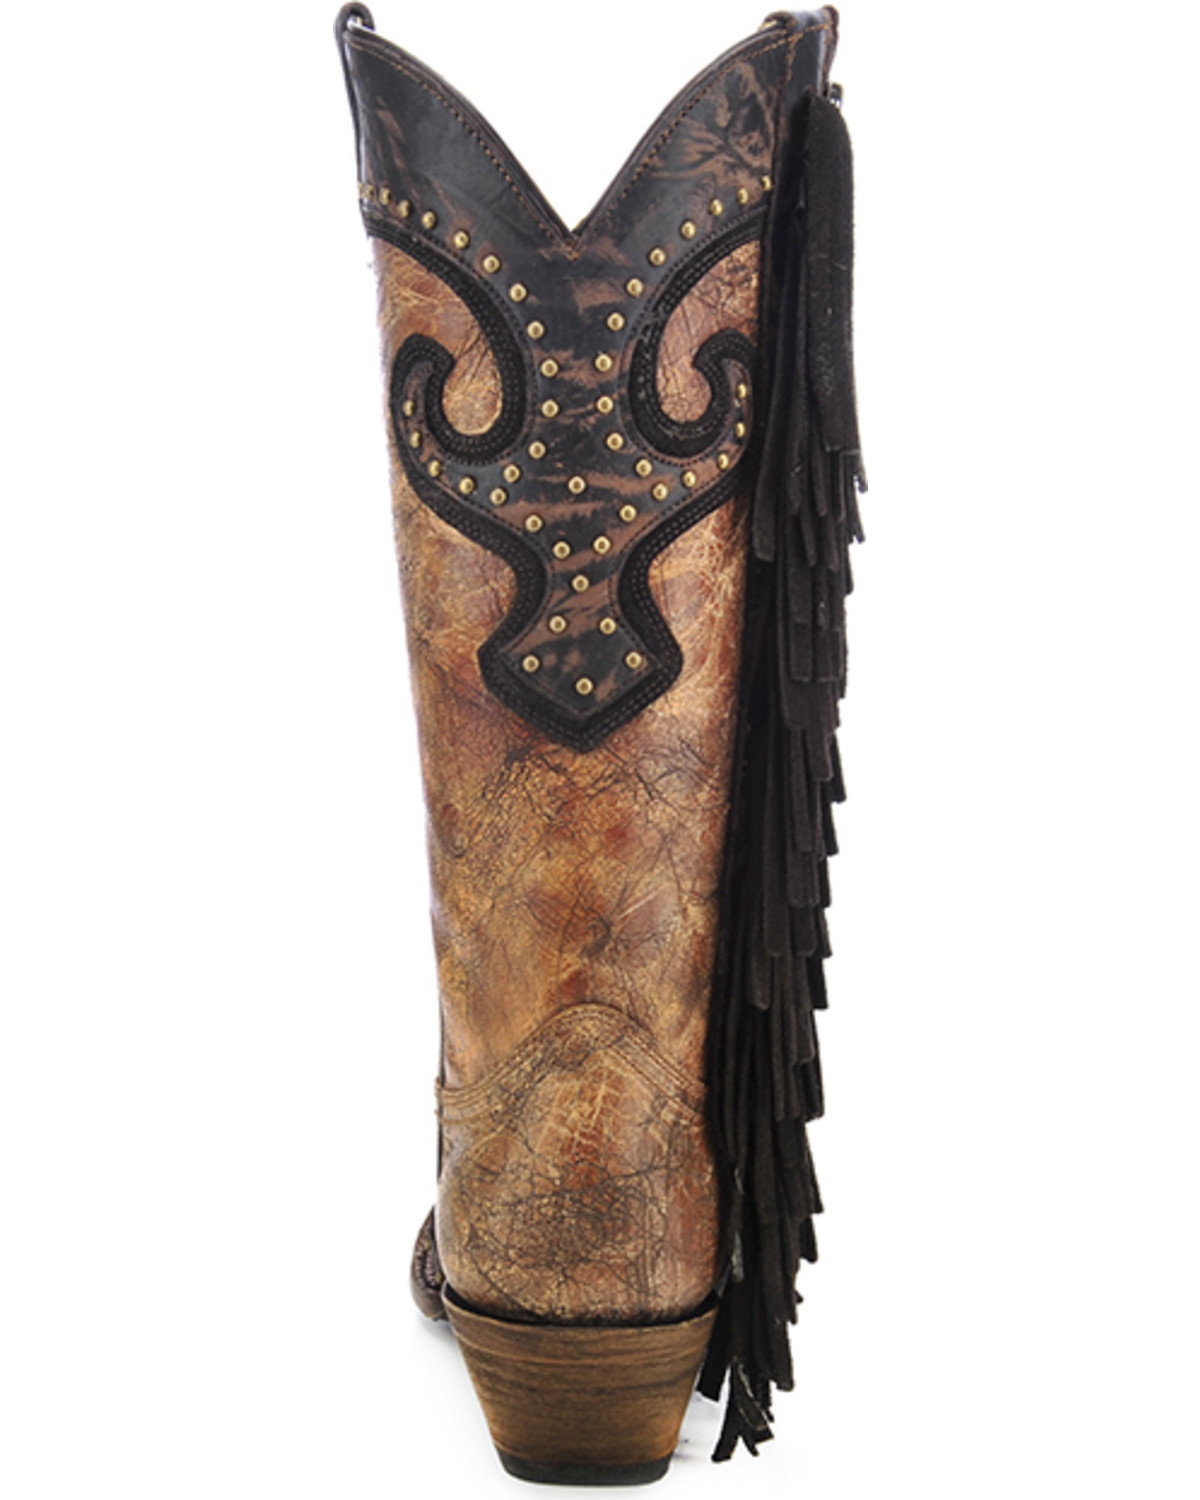 Corral Studded Fringe Cowgirl Boots - Snip Toe - Country Outfitter